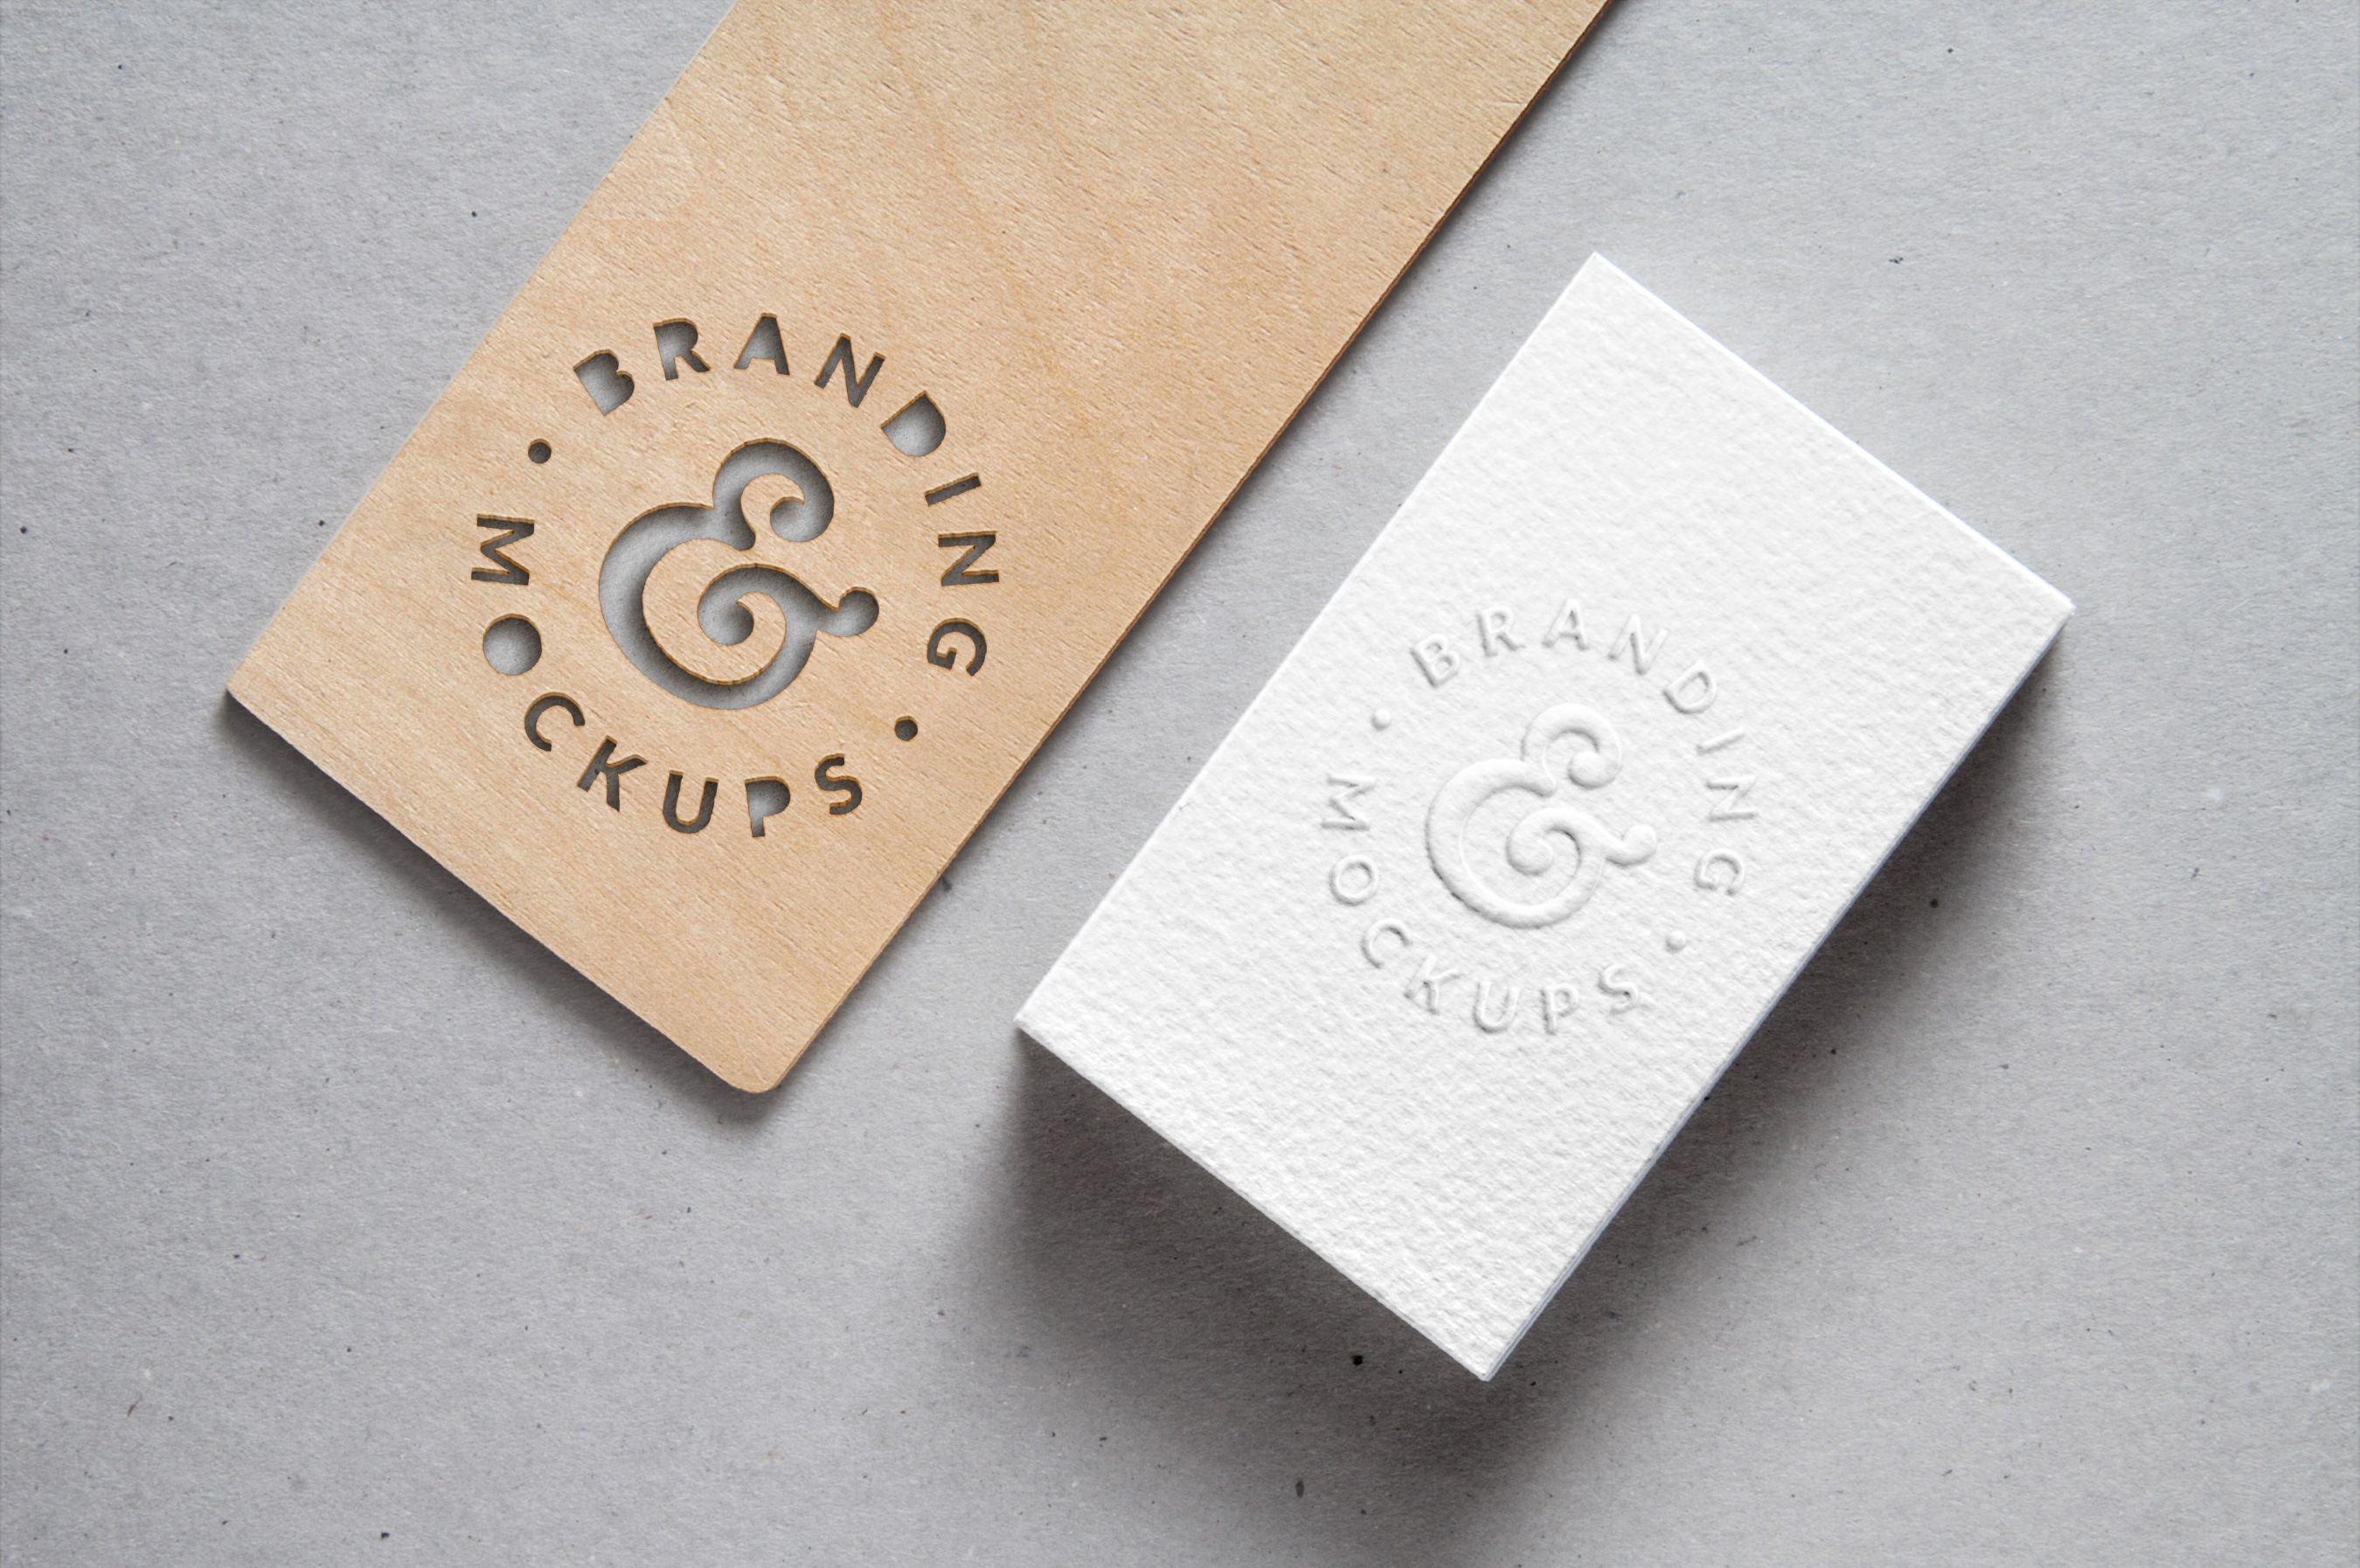 Cutout Wood Embossed B Card Mockup With Images Free Business